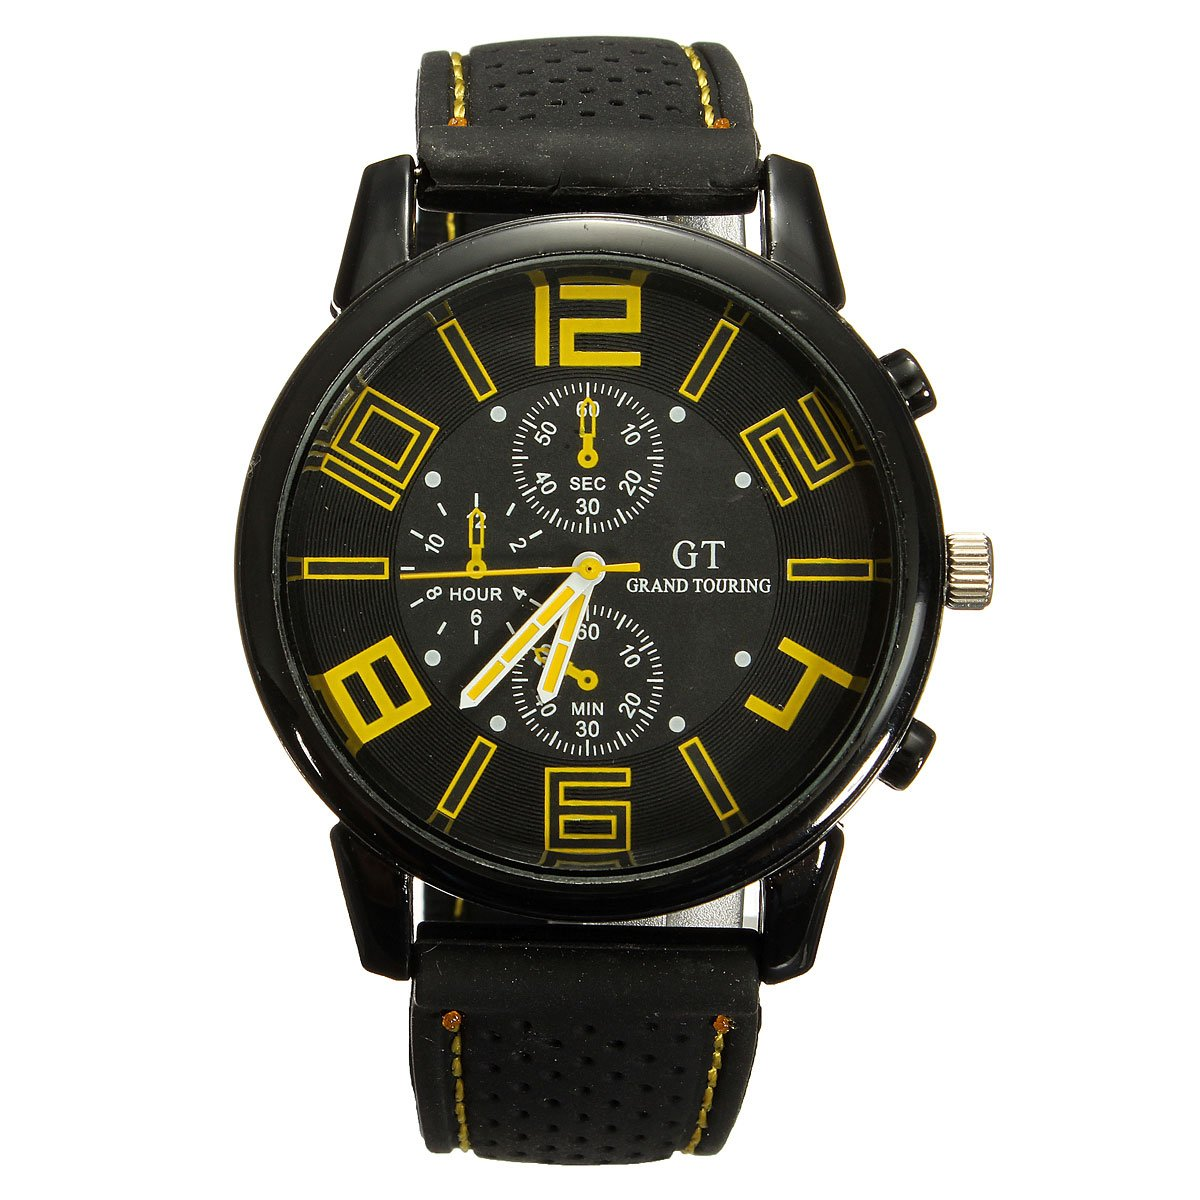 Grand Touring Bracelet Watch Man Quartz Analog Silicone Quartz Wrist Watch Big Dial Yellow and Black цены онлайн